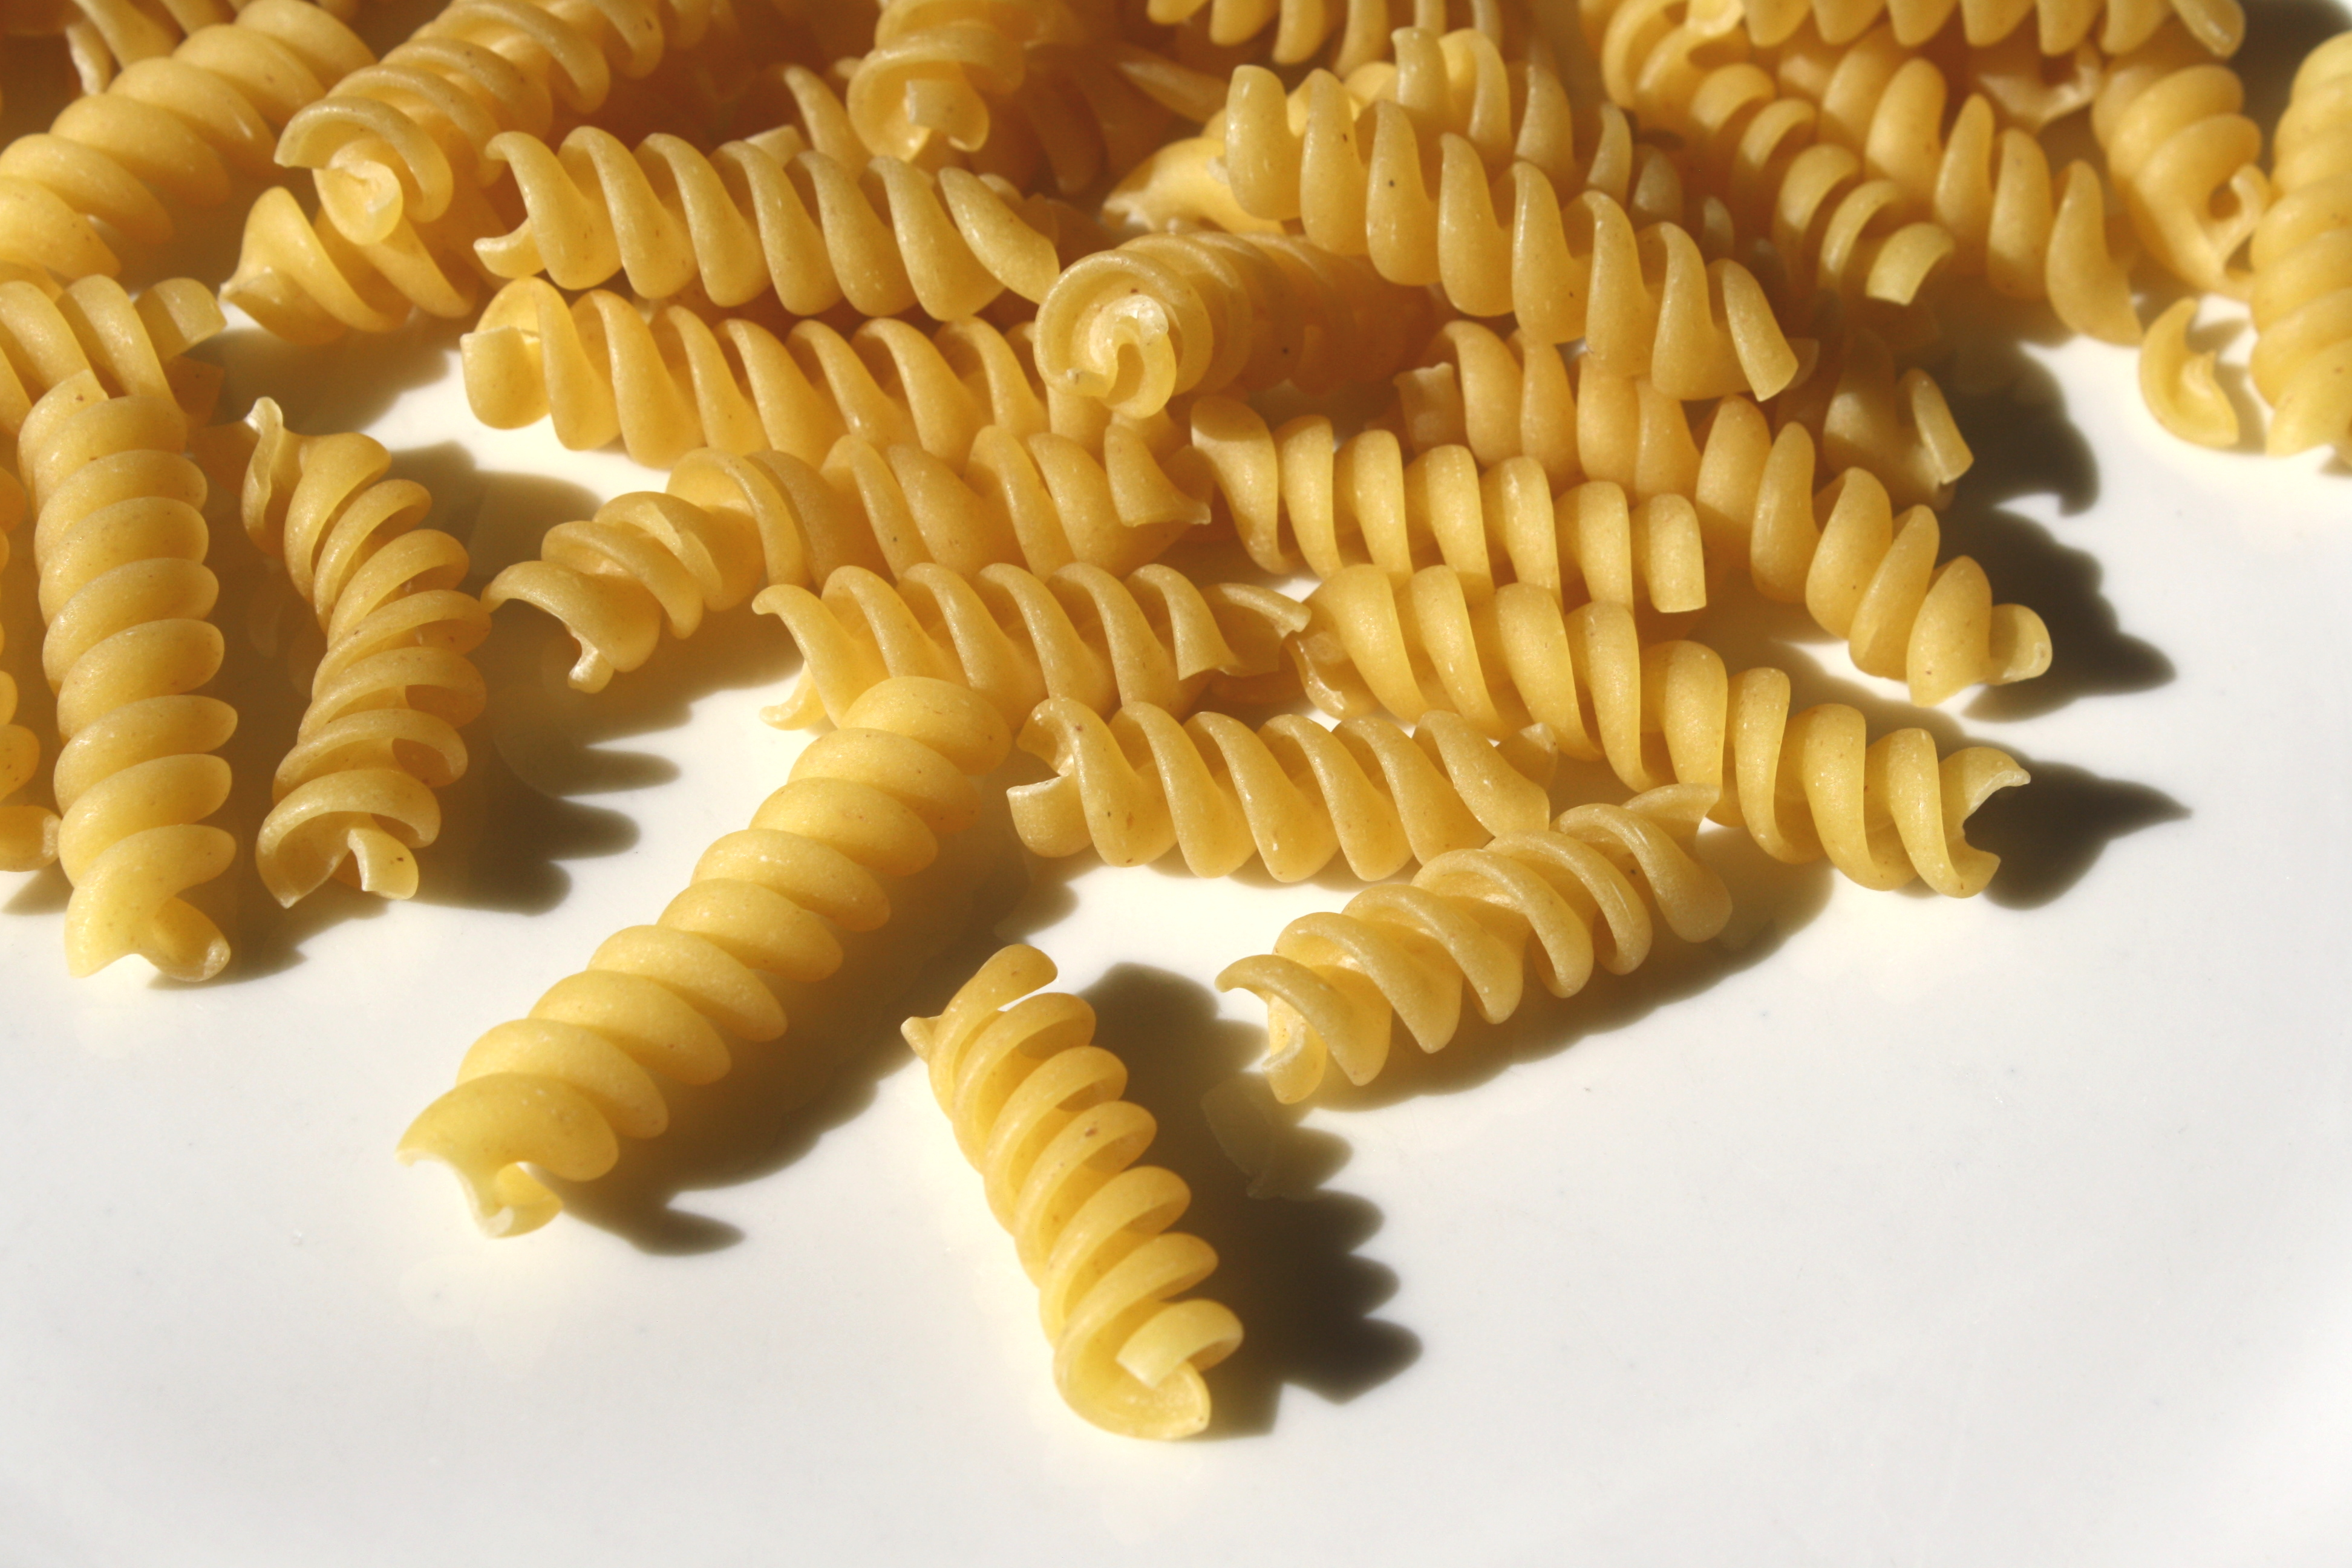 Spiral Pasta Rotini Picture Free Photograph Photos